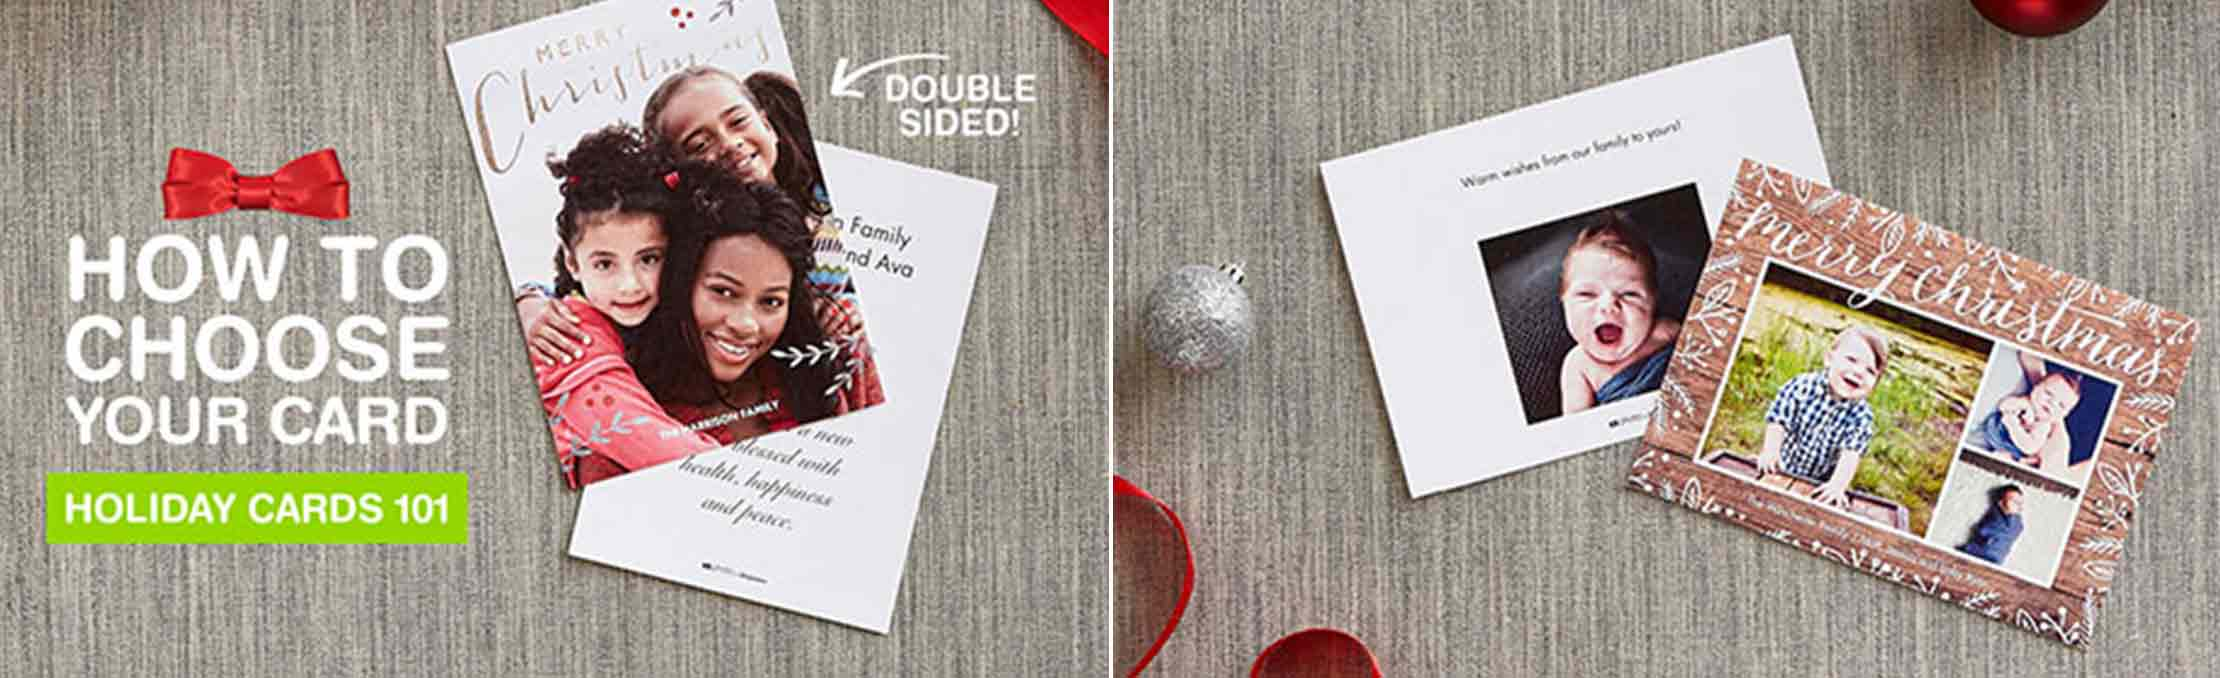 Take me back to the classic site photos turn holiday cards into keepsakes that everyone on your list can treasure long after the season has come to an end with hundreds of options m4hsunfo